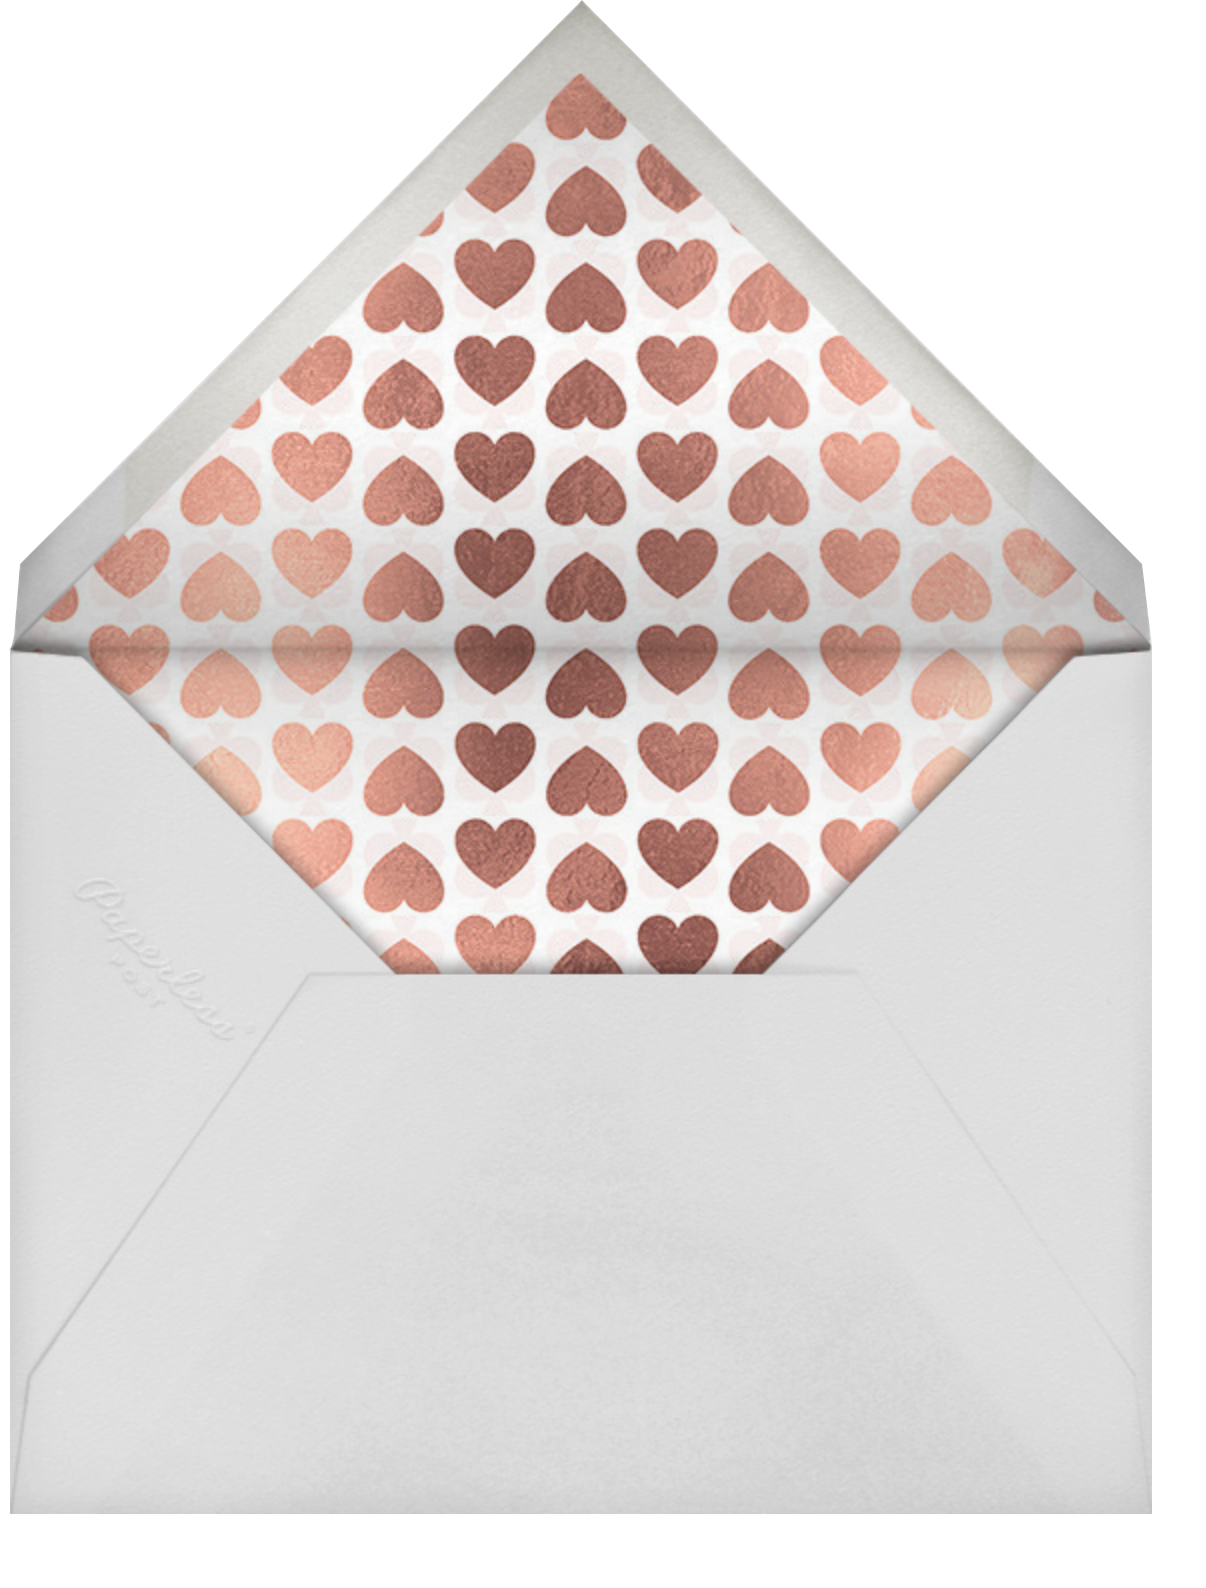 Fallen In Love - White - kate spade new york - Engagement party - envelope back